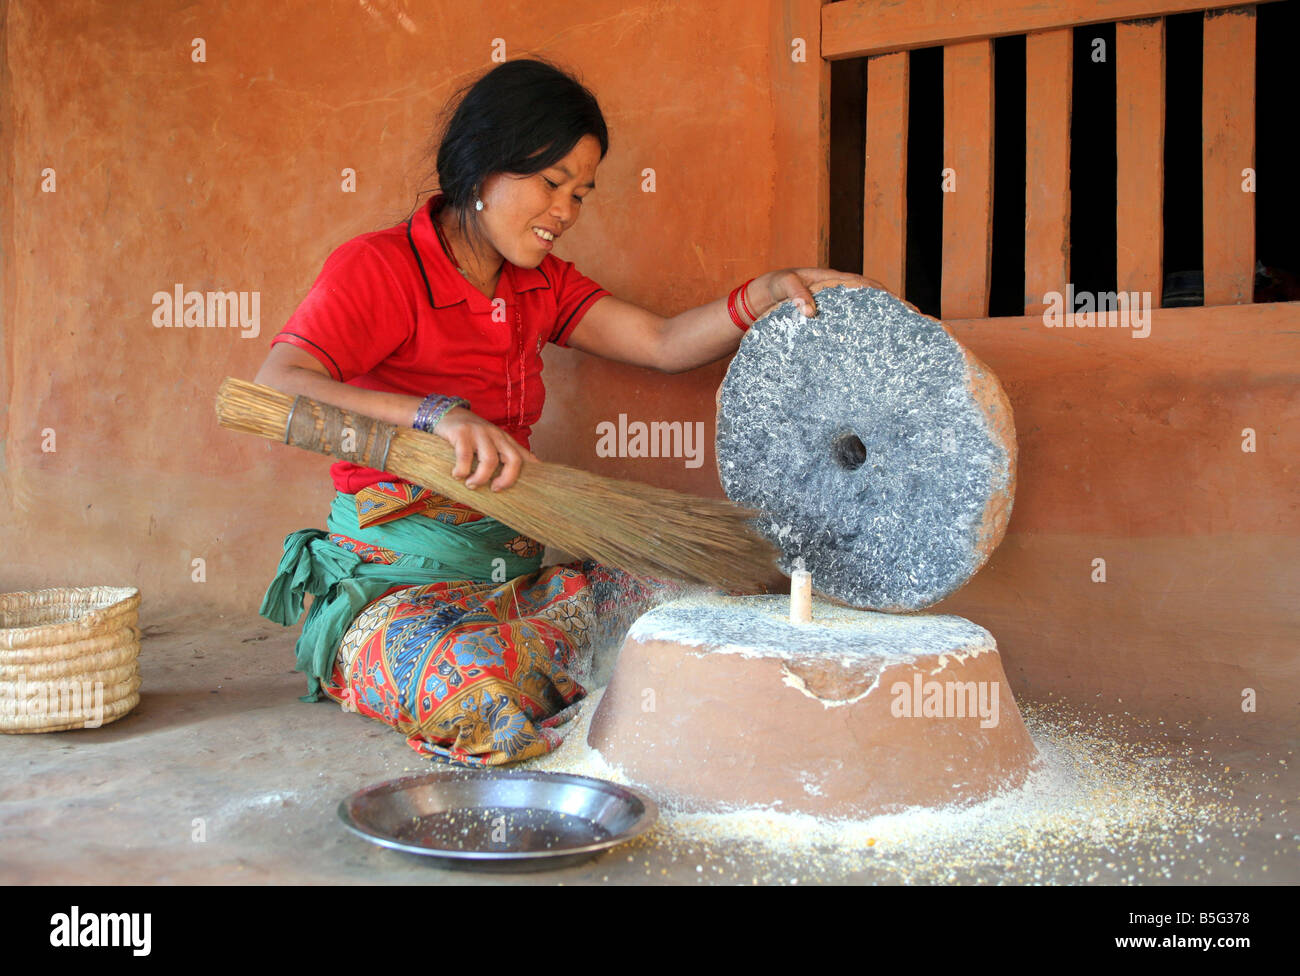 Nepal: woman grinding rice with a stone grinder in a village in the Himalaya mountains - Stock Image